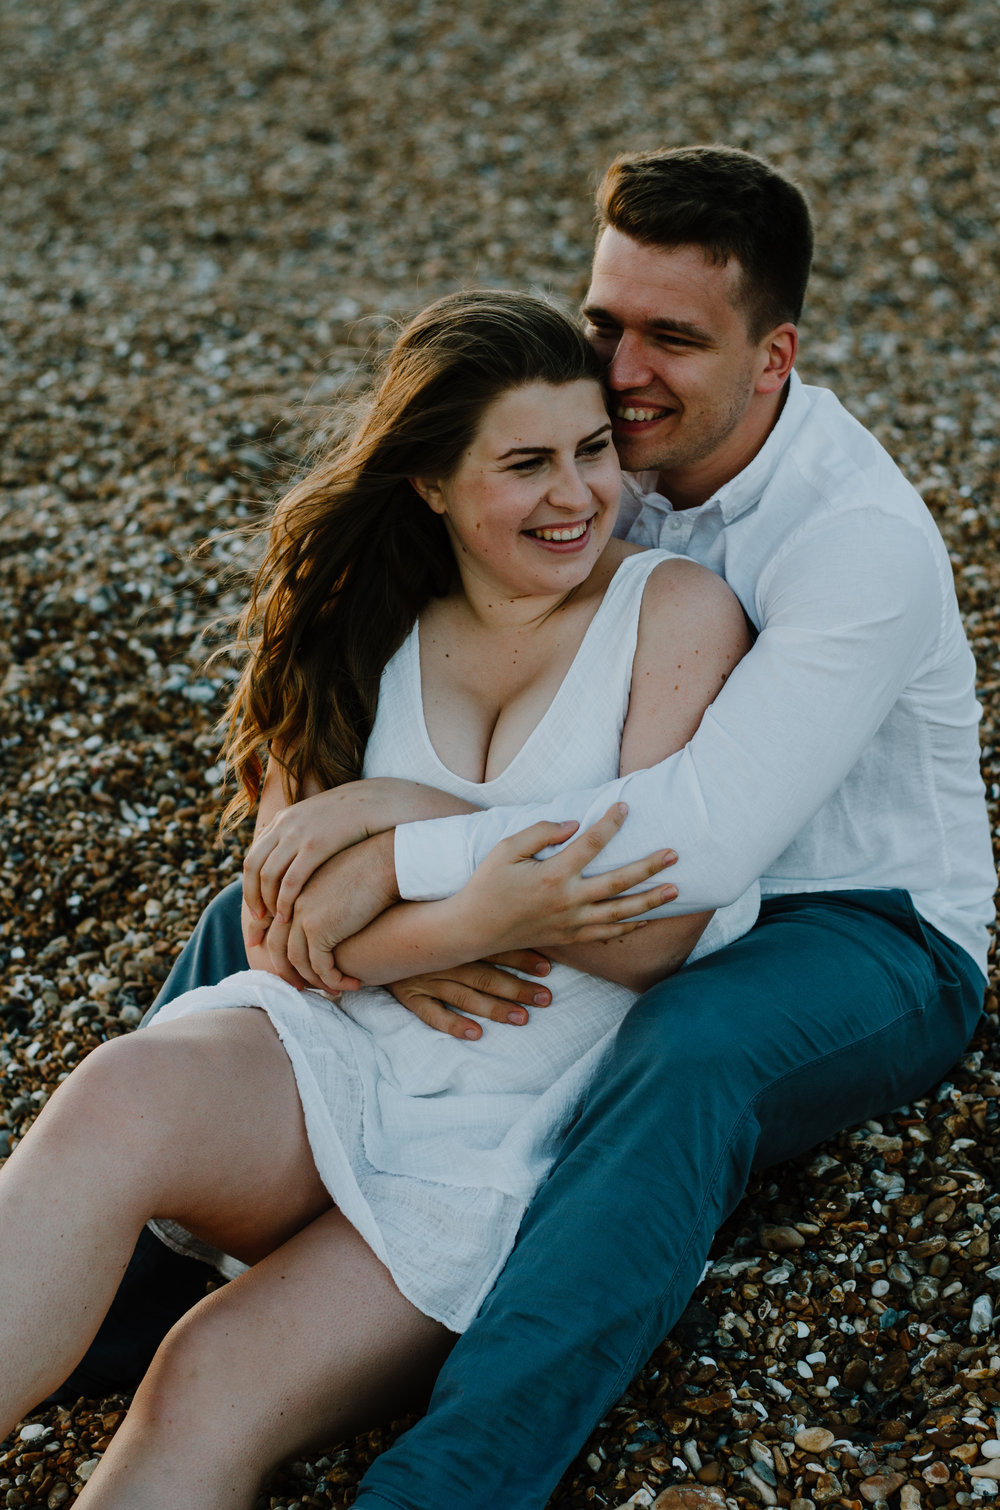 Ieva & Julius - Brighton Beach - Couple Session - Aiste Saulyte Photography-48.jpg